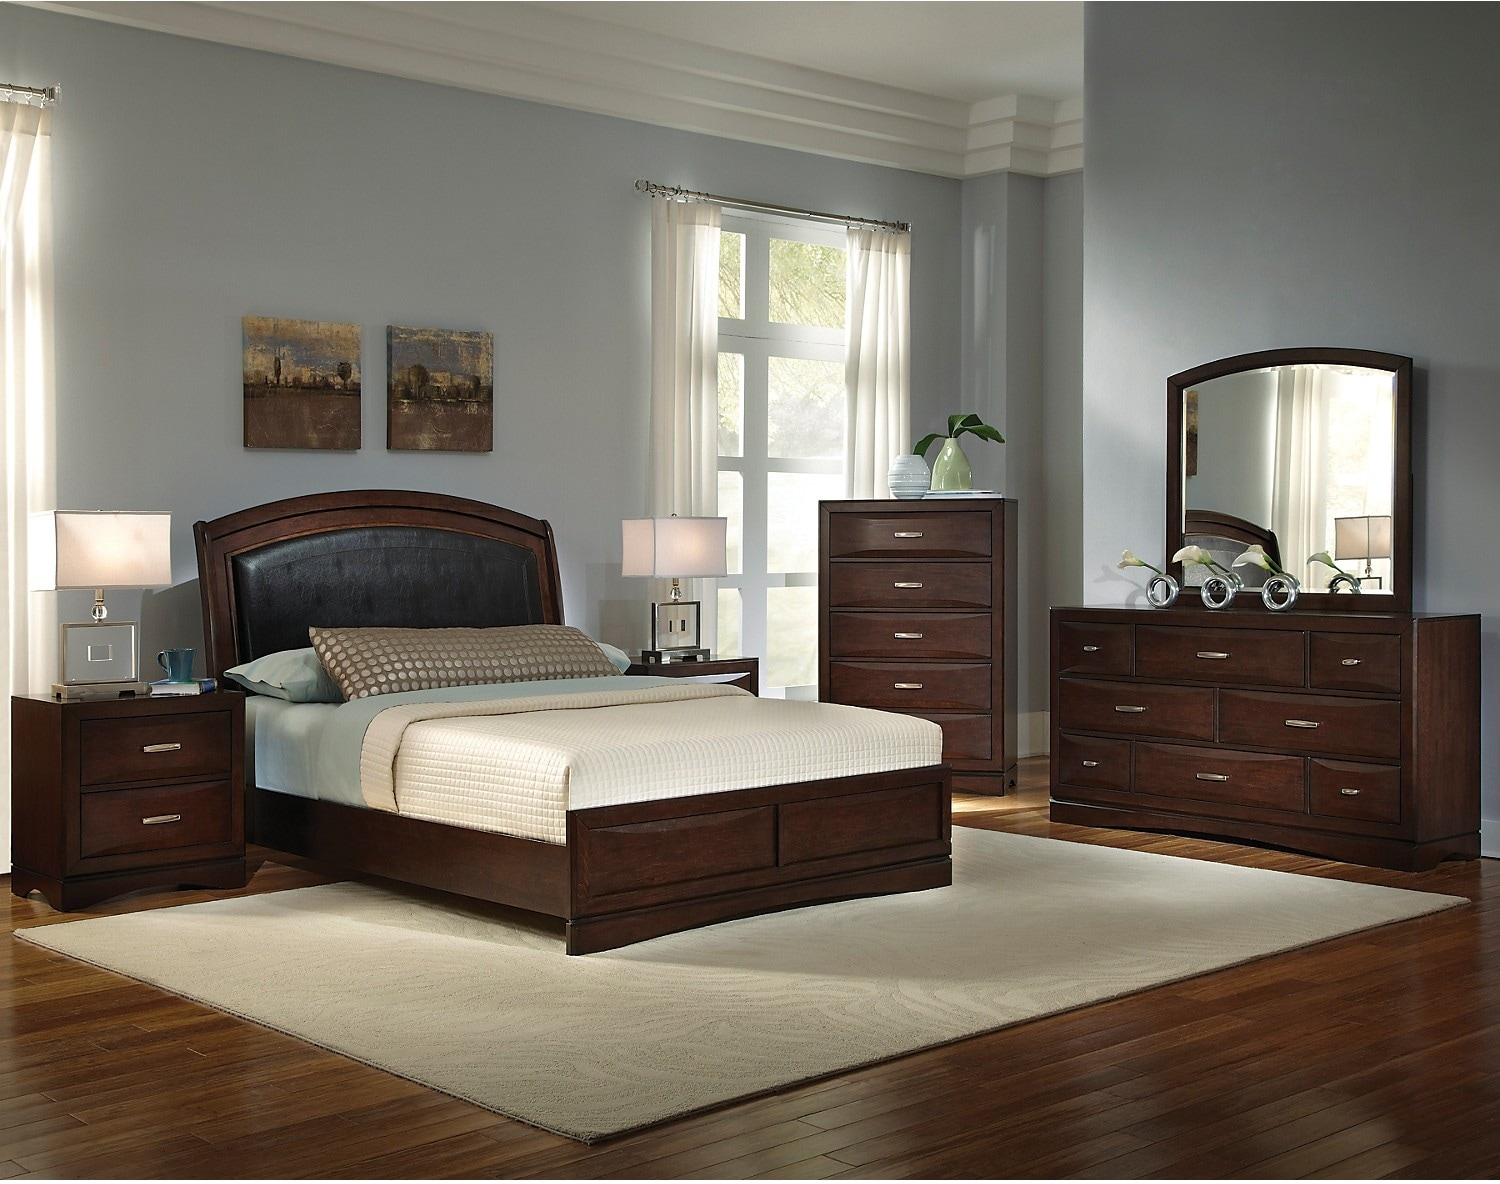 Bedroom Furniture - Beverly 5-Piece King Bedroom Package